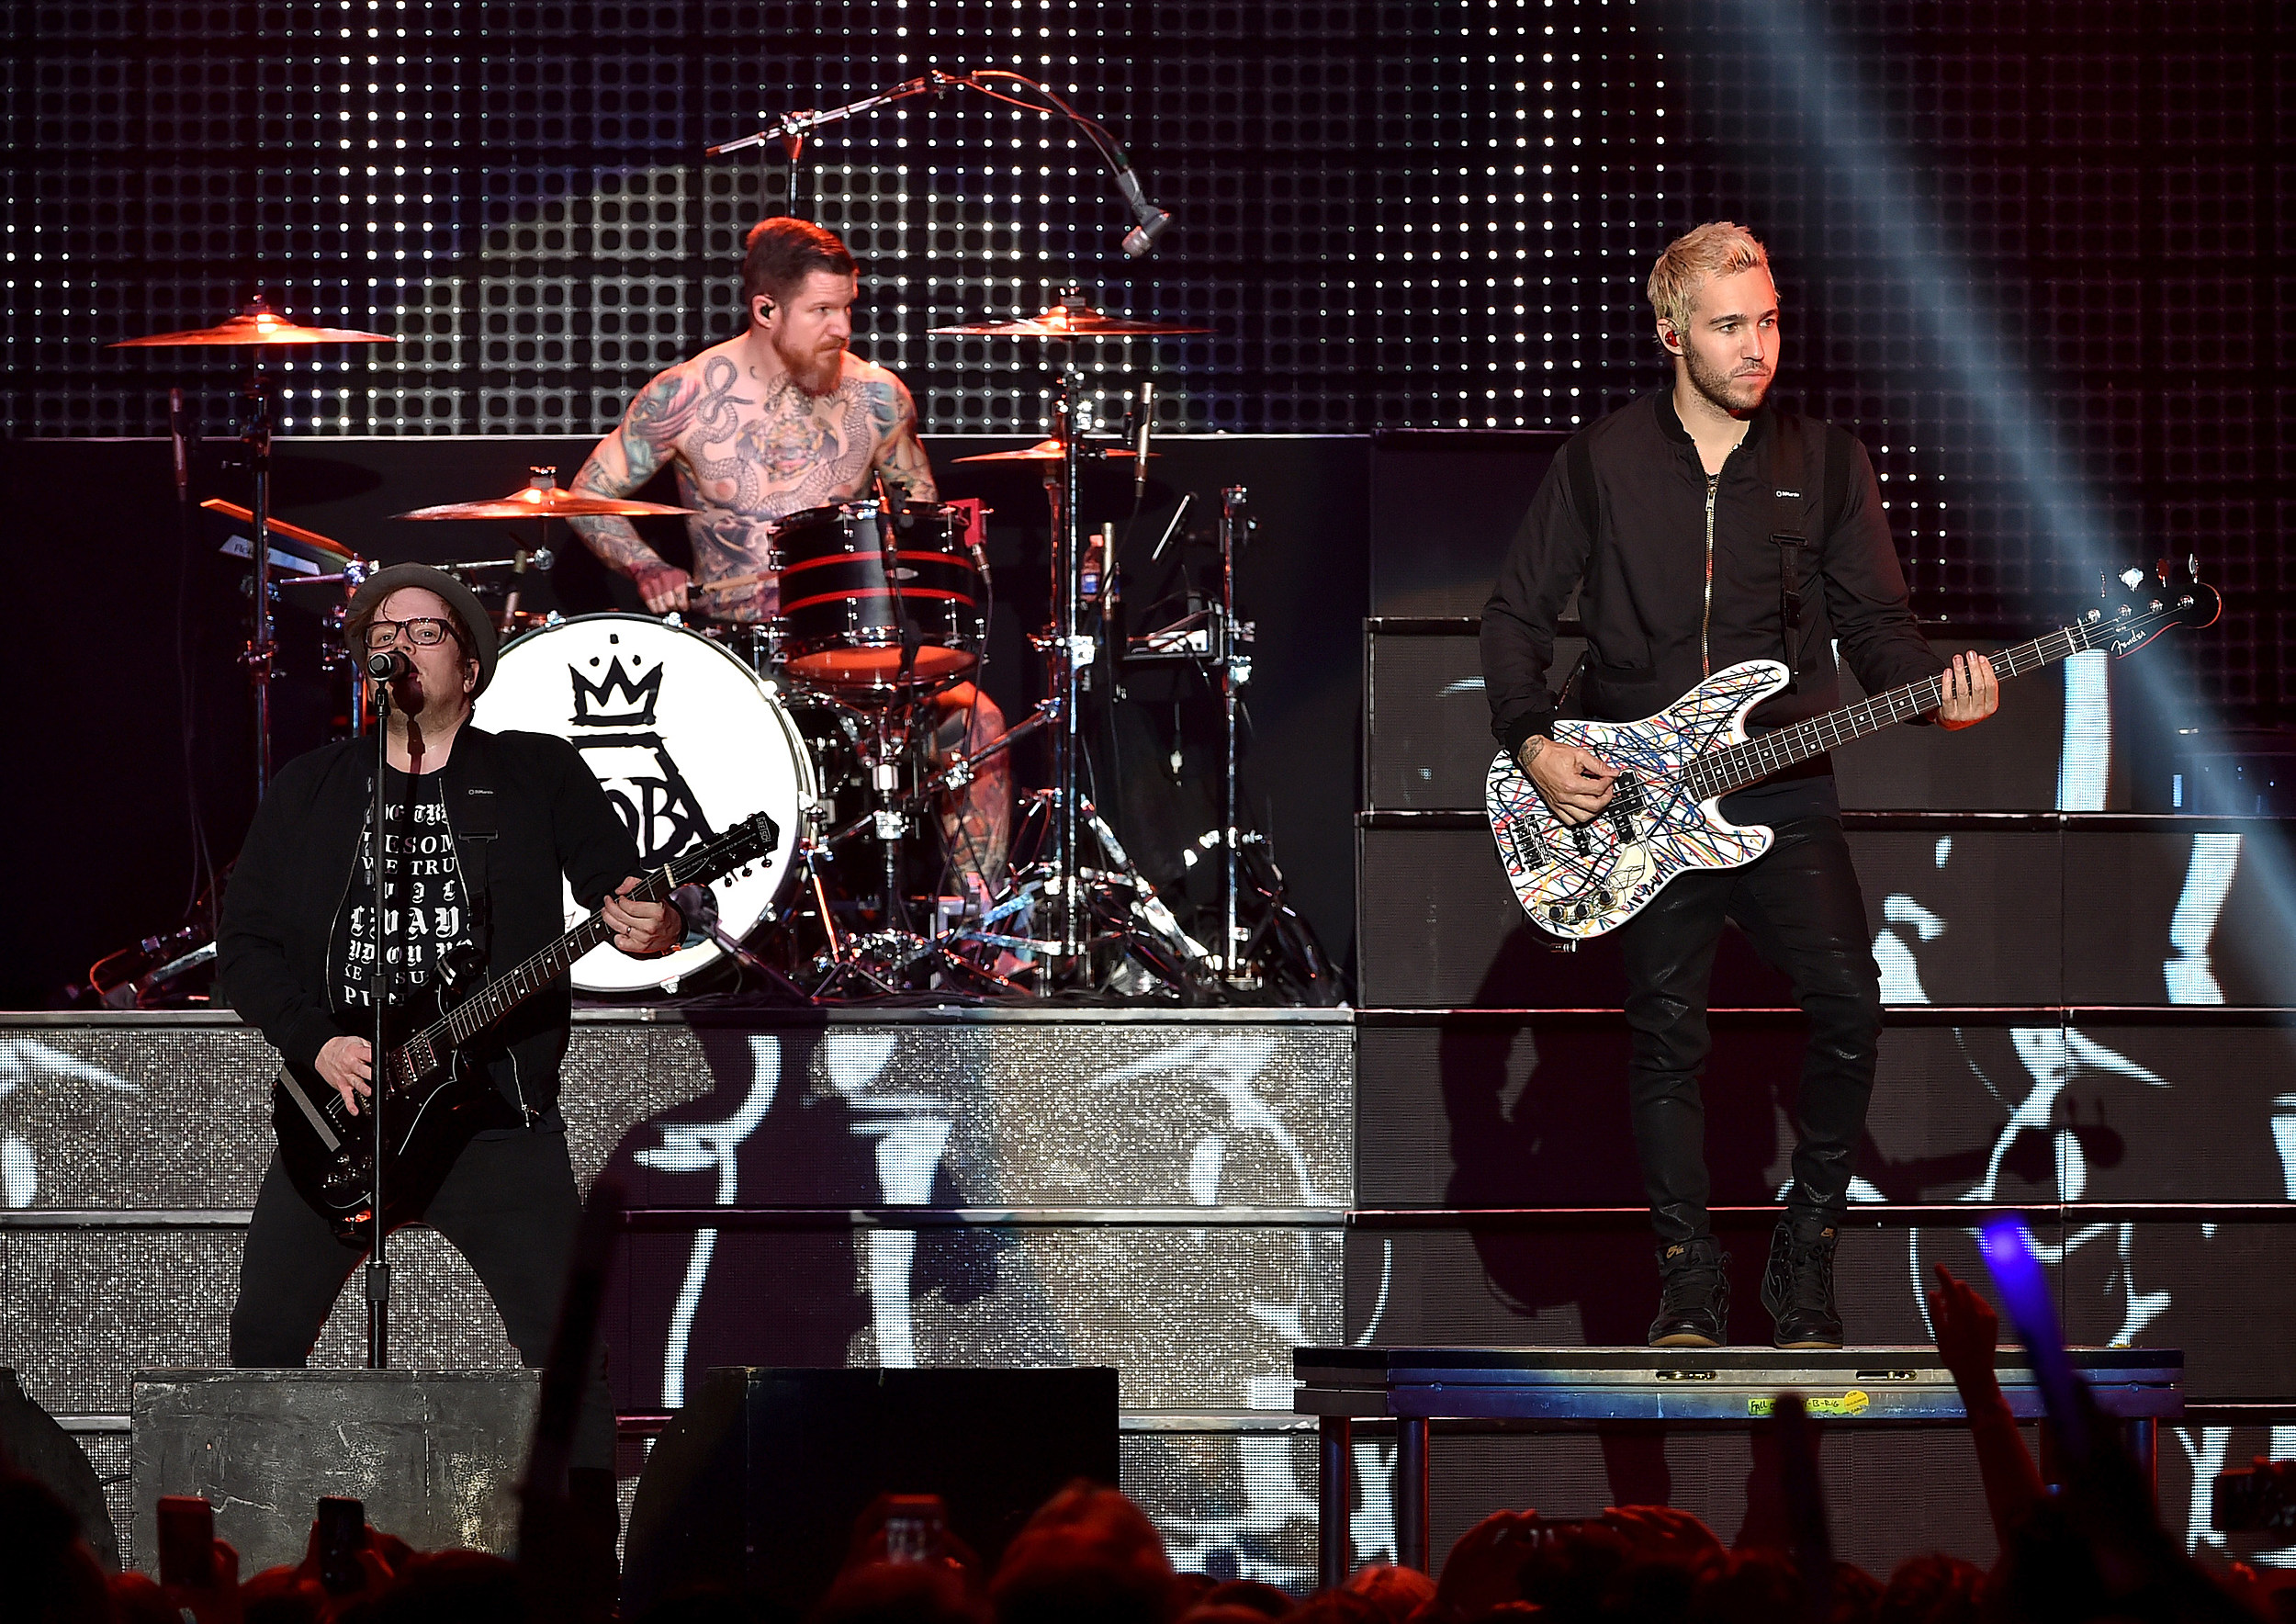 7 Songs You're Going to Hear When Fall Out Boy Plays The Fair